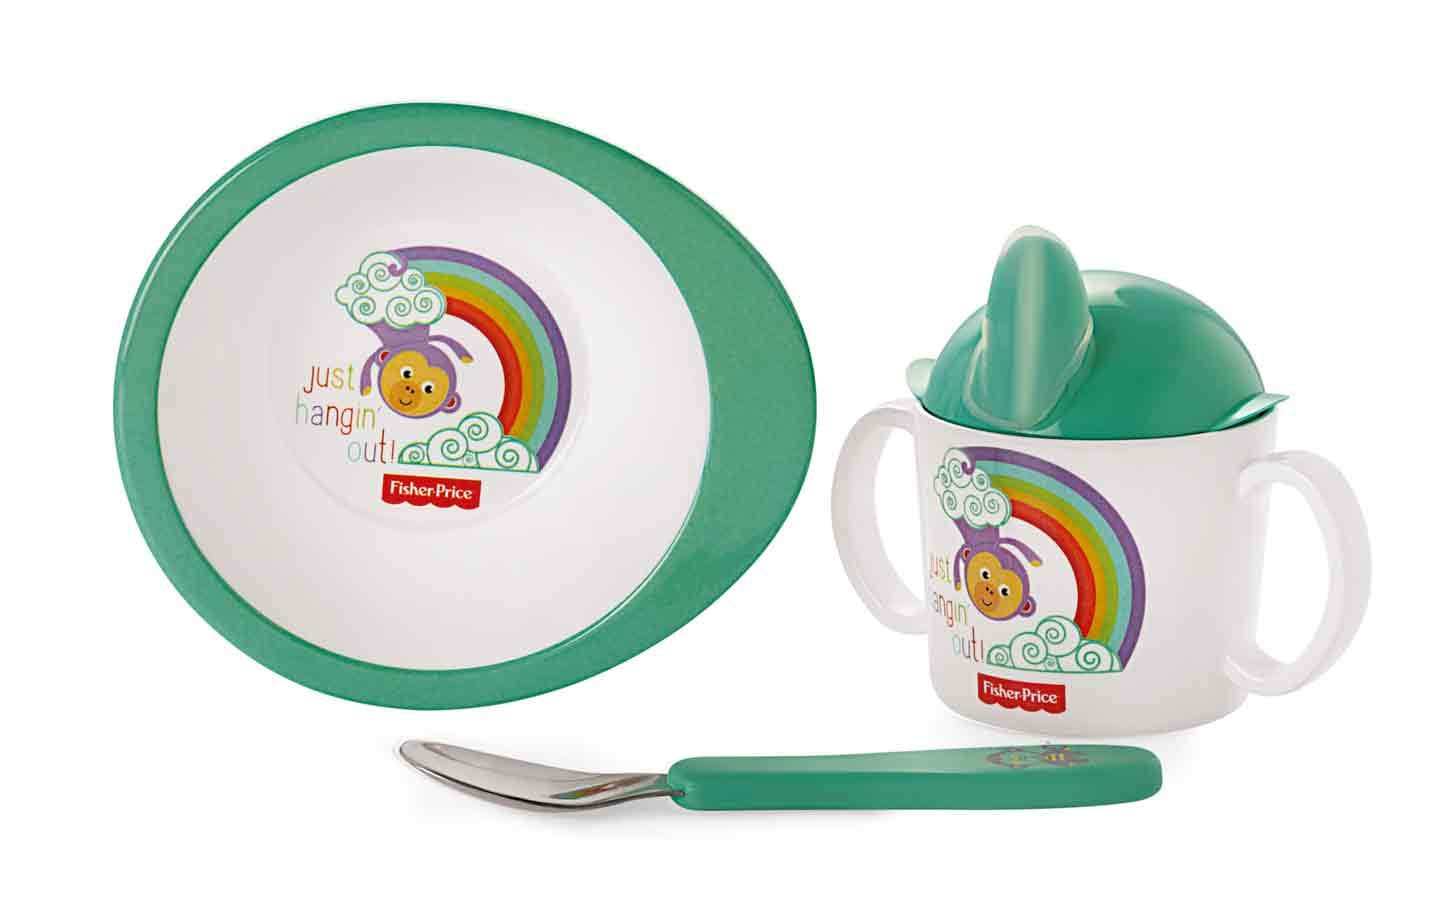 Cello Melmoware Kids Fisher Price Set, Set of 3, Just Hang in Out Design